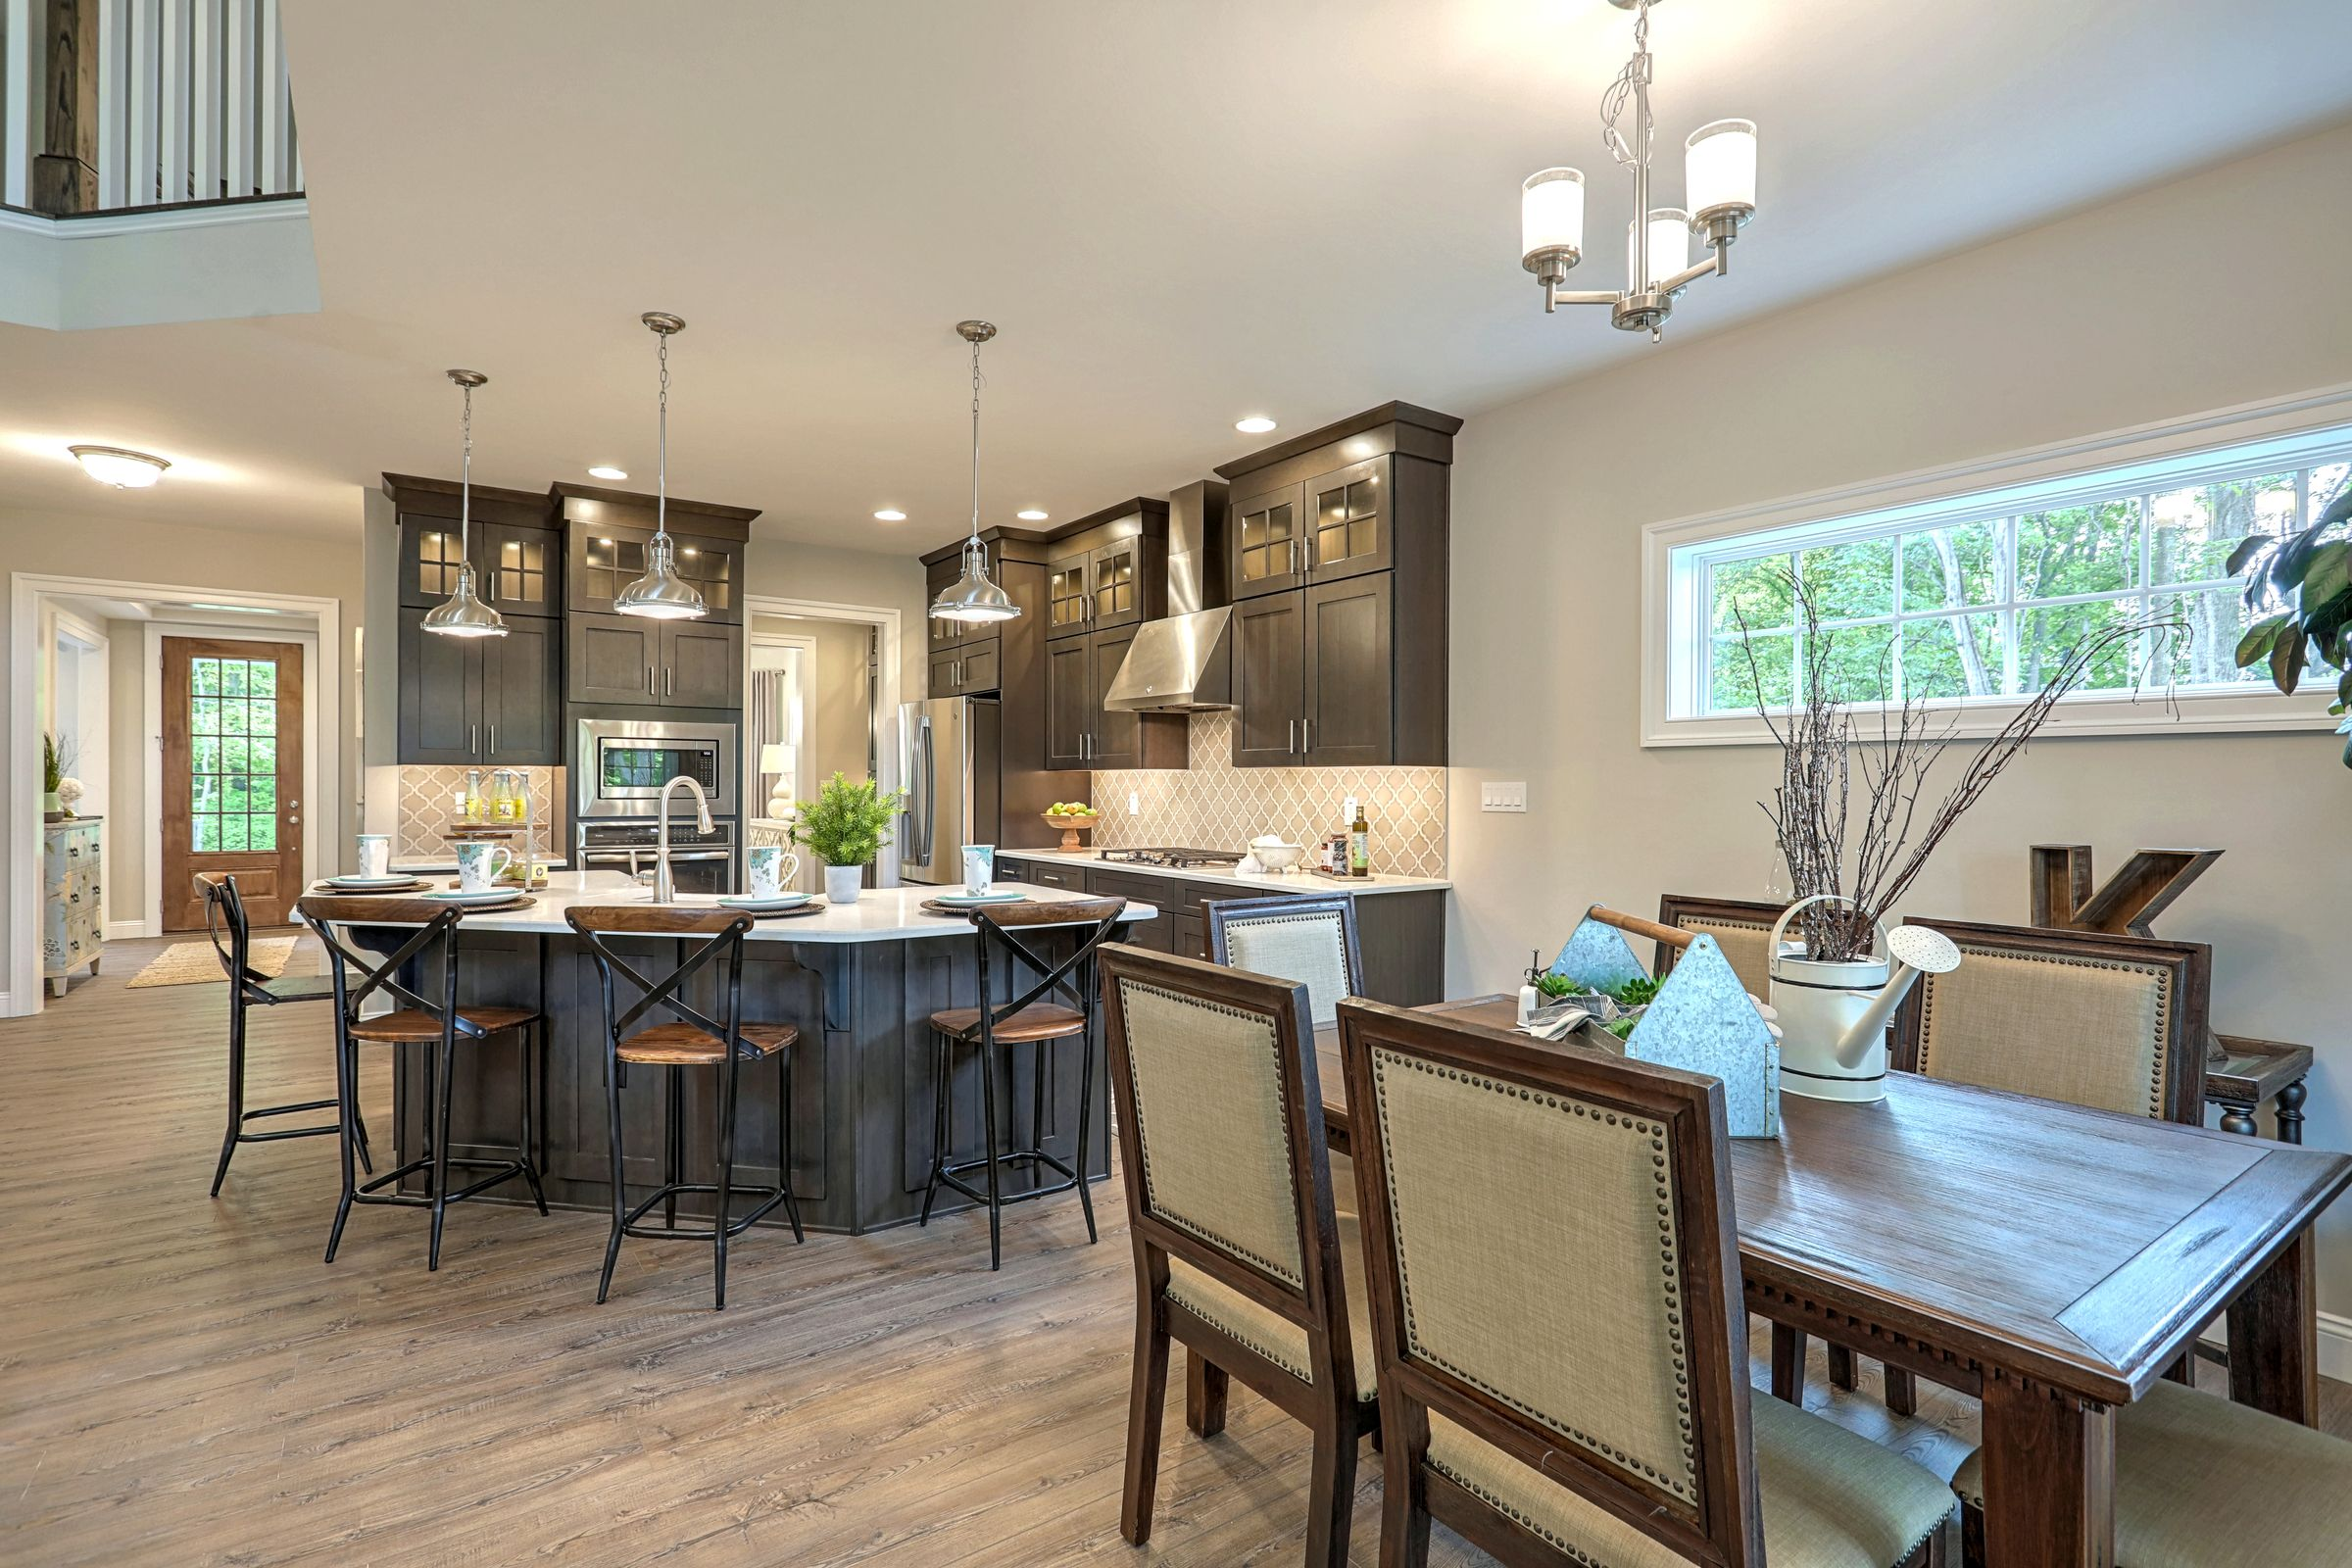 Kitchen featured in the Nottingham Manor By Keystone Custom Homes in Lancaster, PA